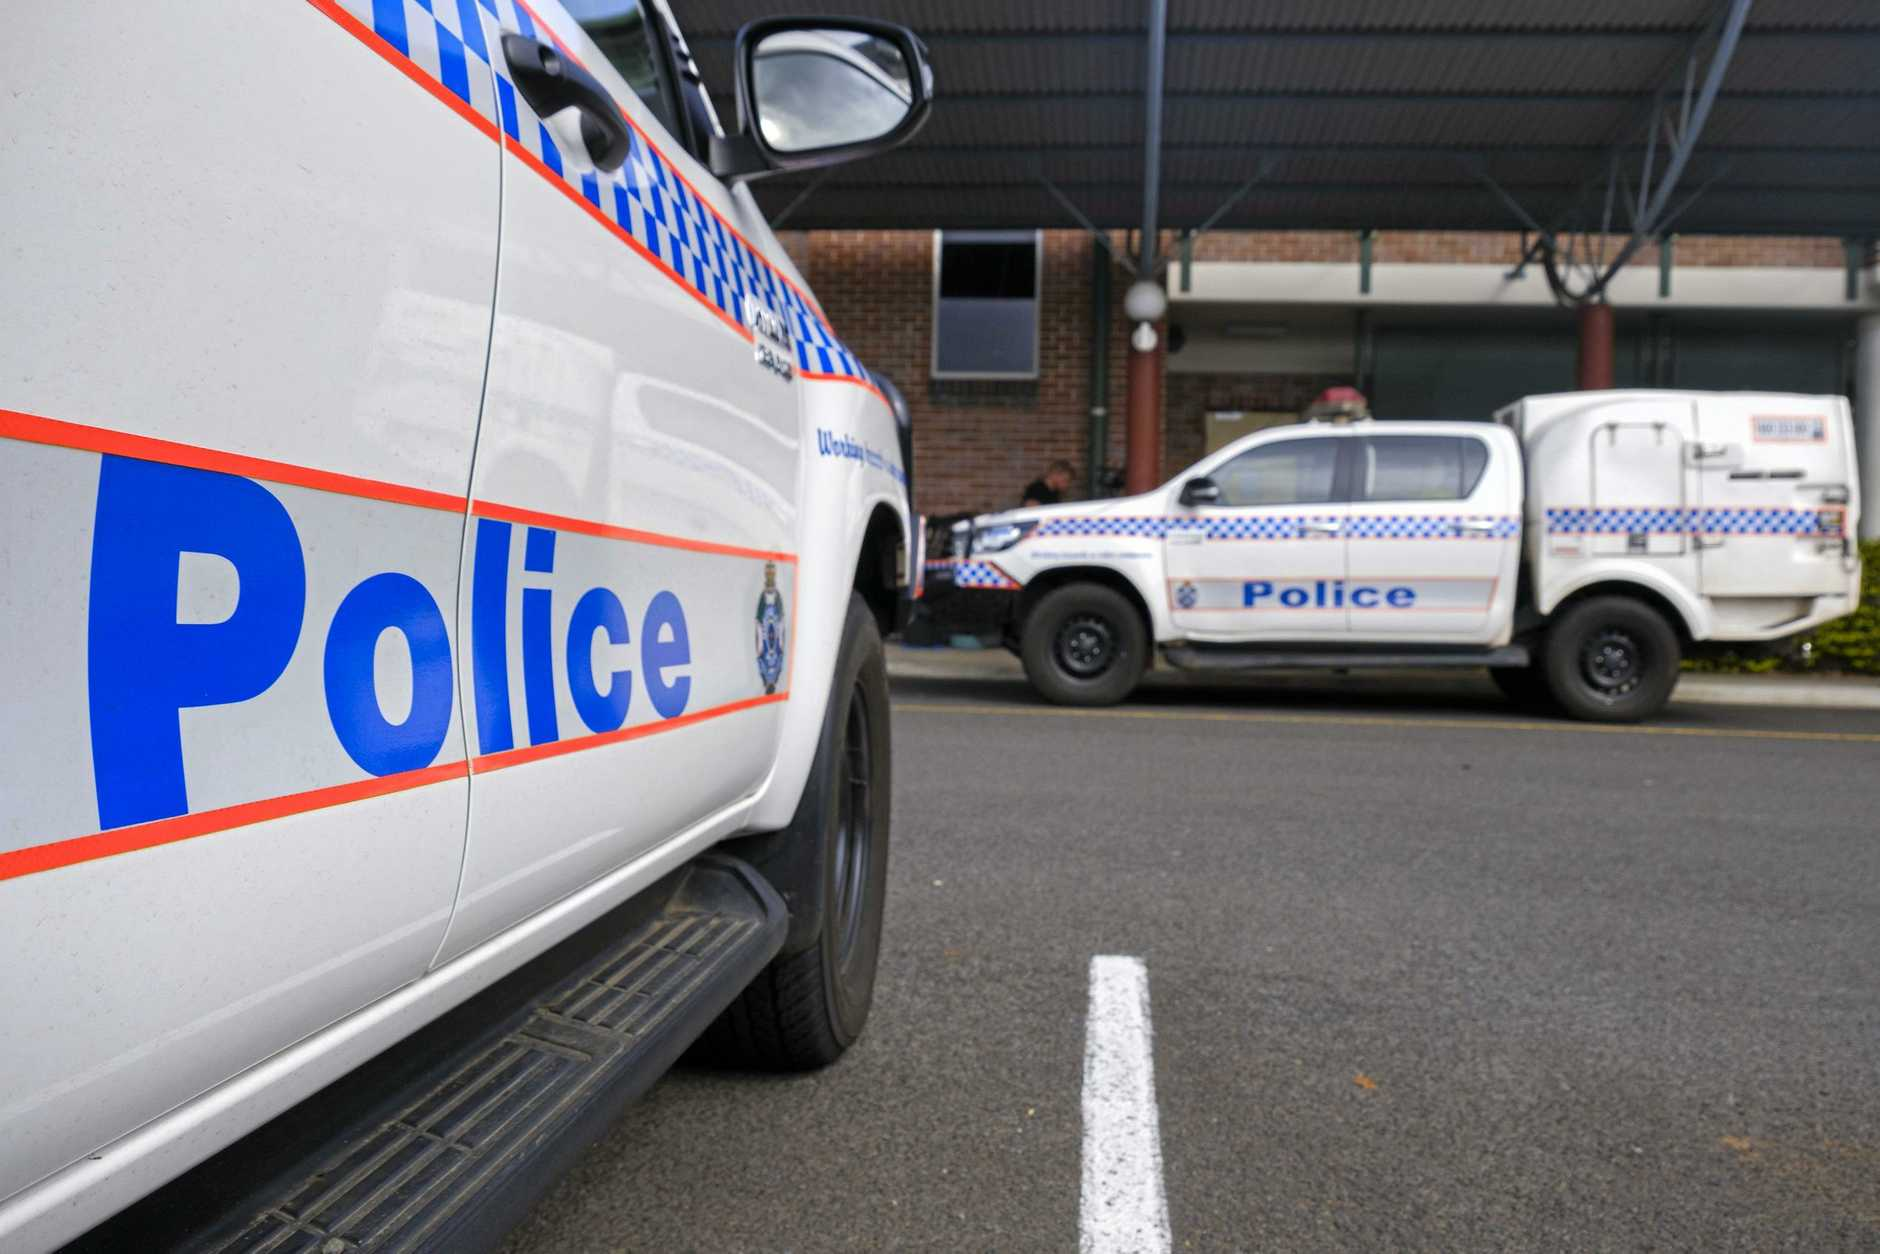 The 39-year-old man was secured in the caged truck and taken to Lismore Police Station.